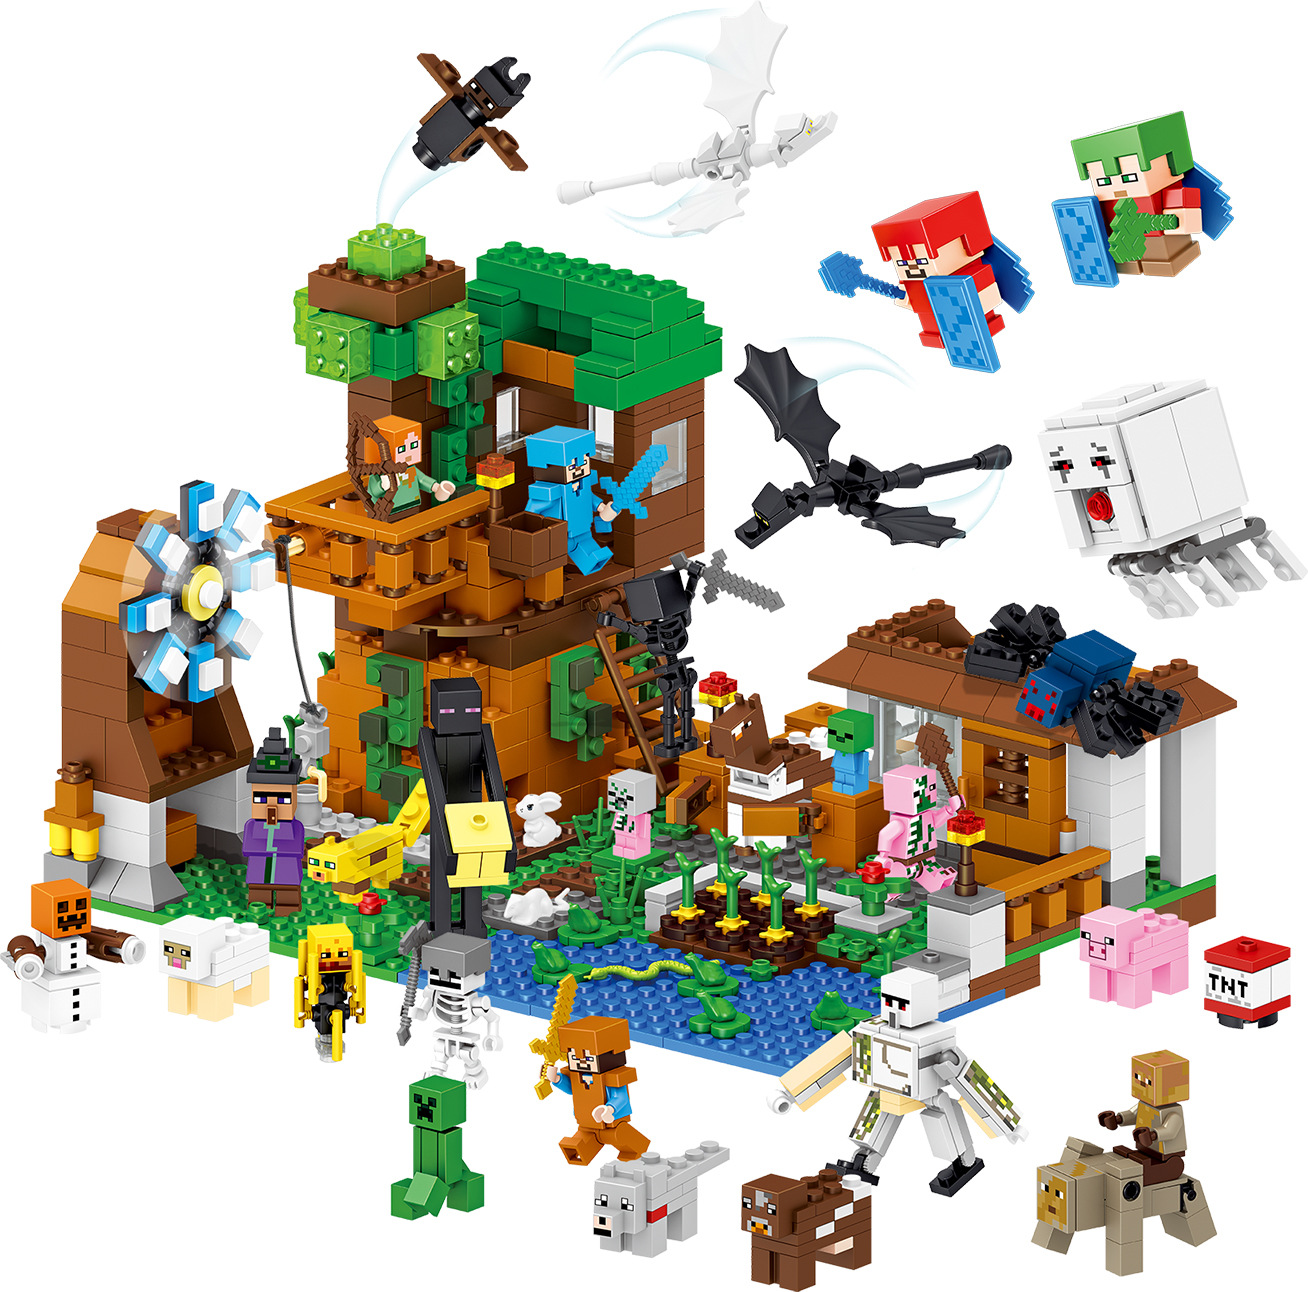 33163 1007pcs My World Luxury Tree House Pet Village Farm Windmill Lele Building Blocks Brick Toy realts out of print product village house w base diorama building 1 35 miniart 36031